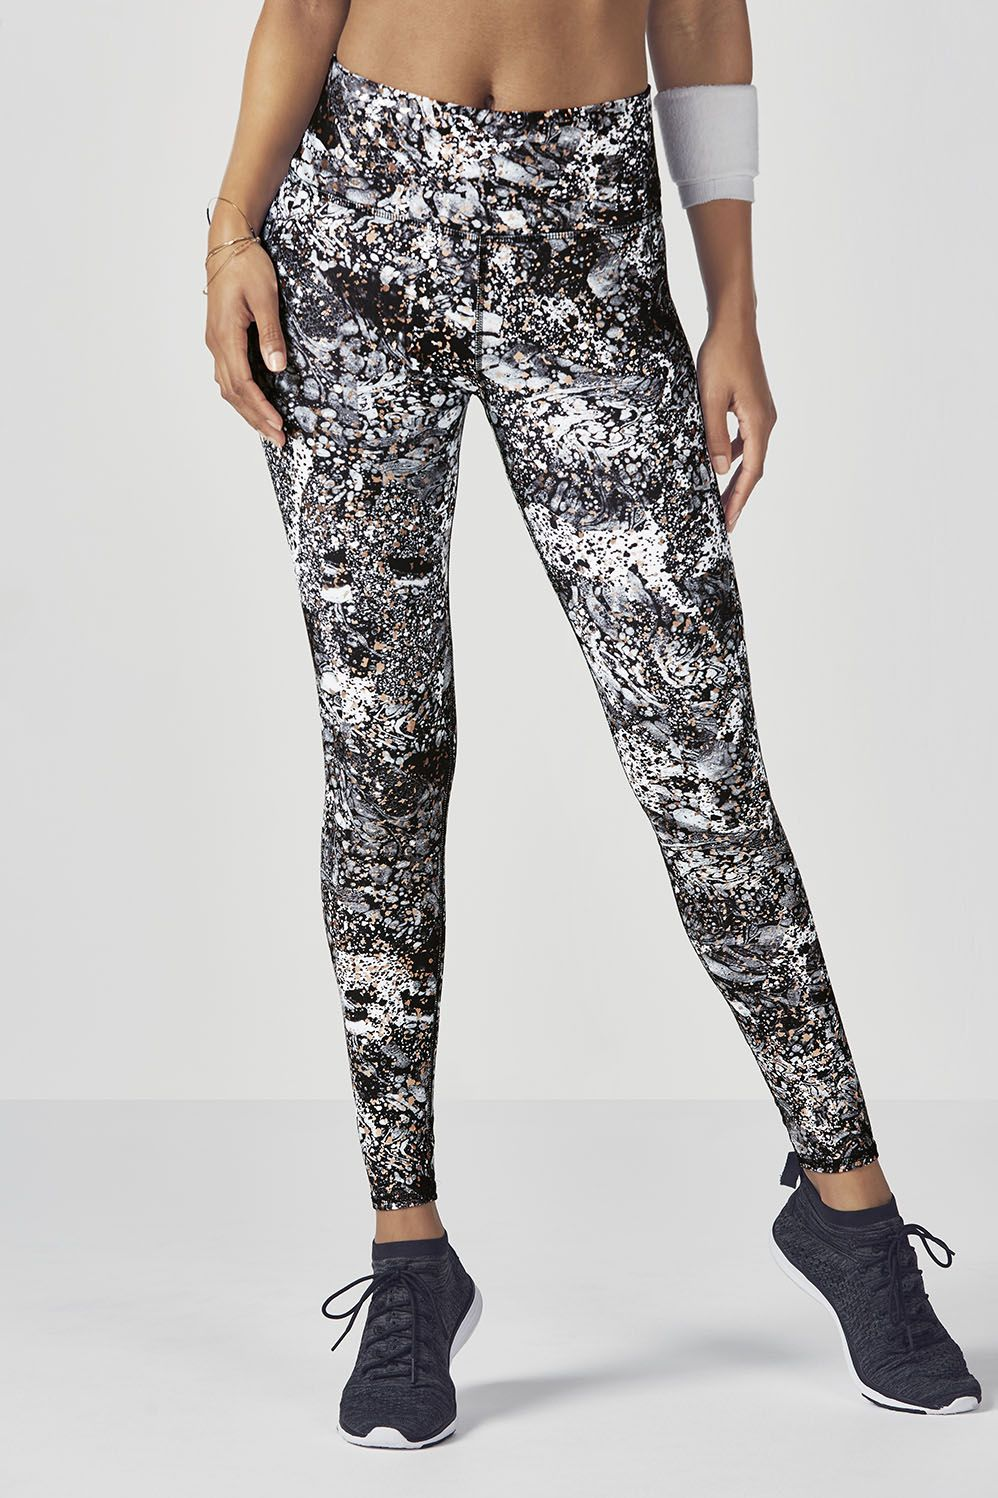 65fefca9fd3cce High-Waisted Printed PowerHold® Legging | Clothes & Accessories ...